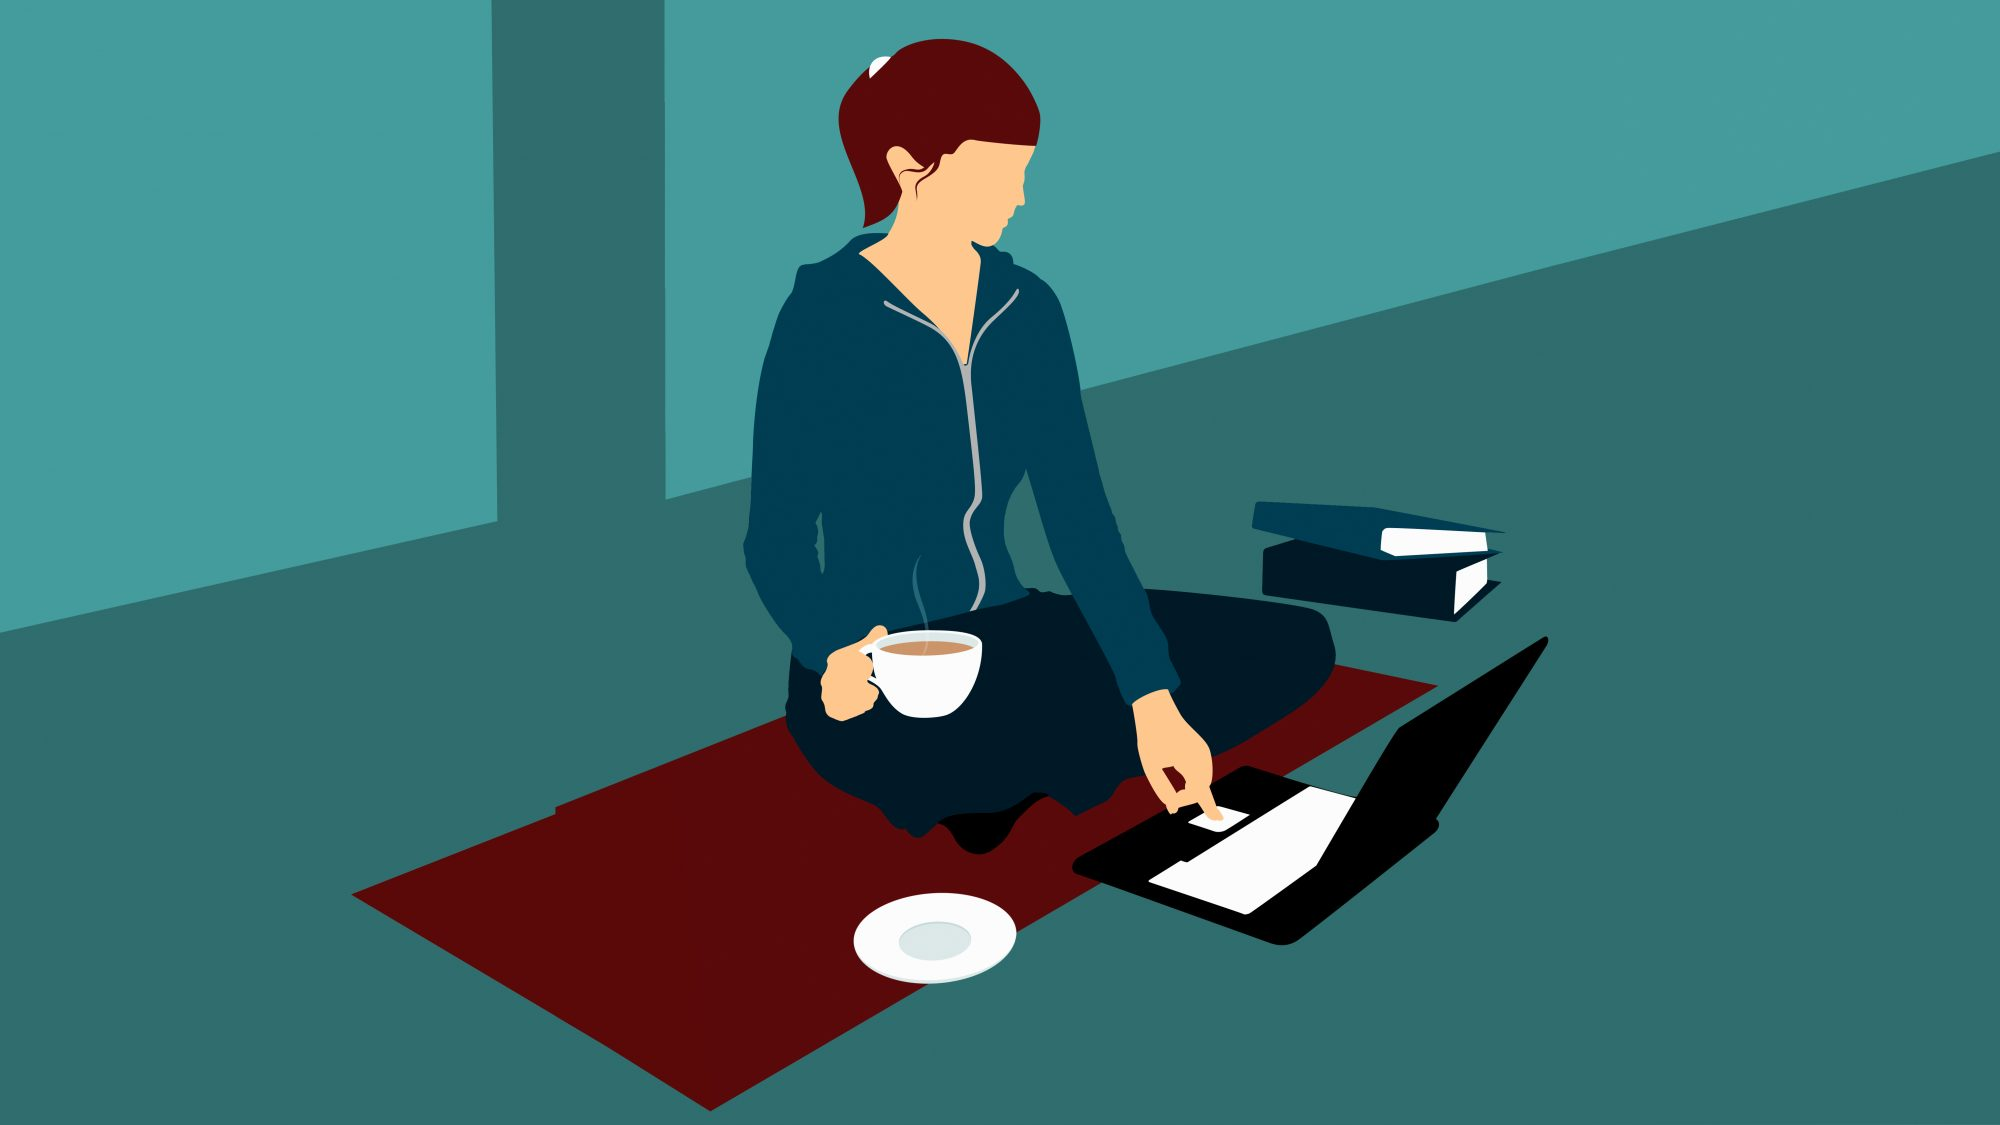 Illustration of a woman sitting on the floor with a cup of tea and using a laptop